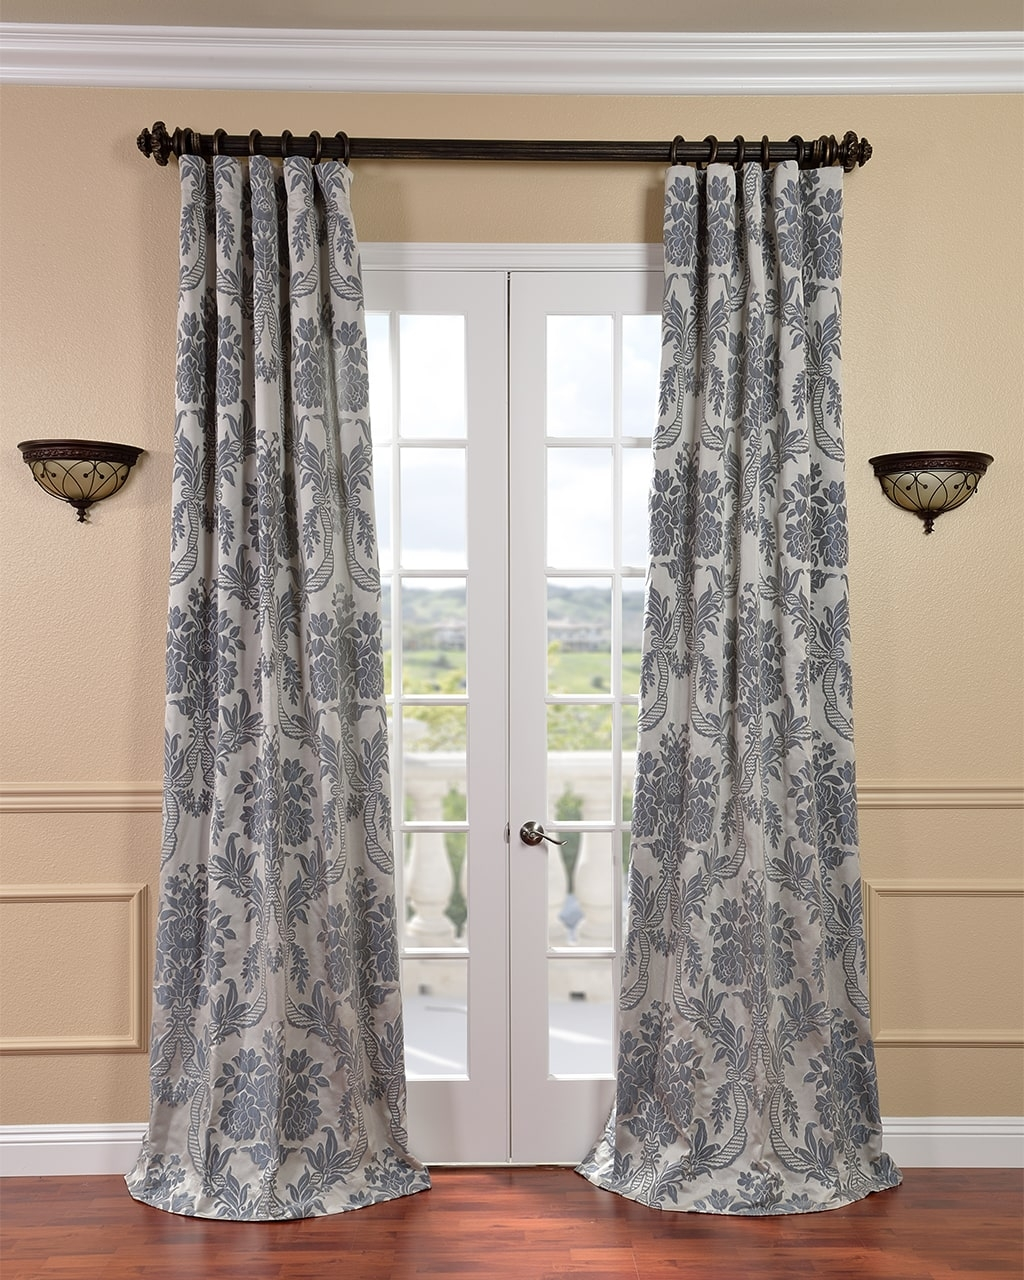 120 Inches Curtains Drapes Shop The Best Brands Overstock With Ready Made Curtains 120 Inch Drop (Image 5 of 15)